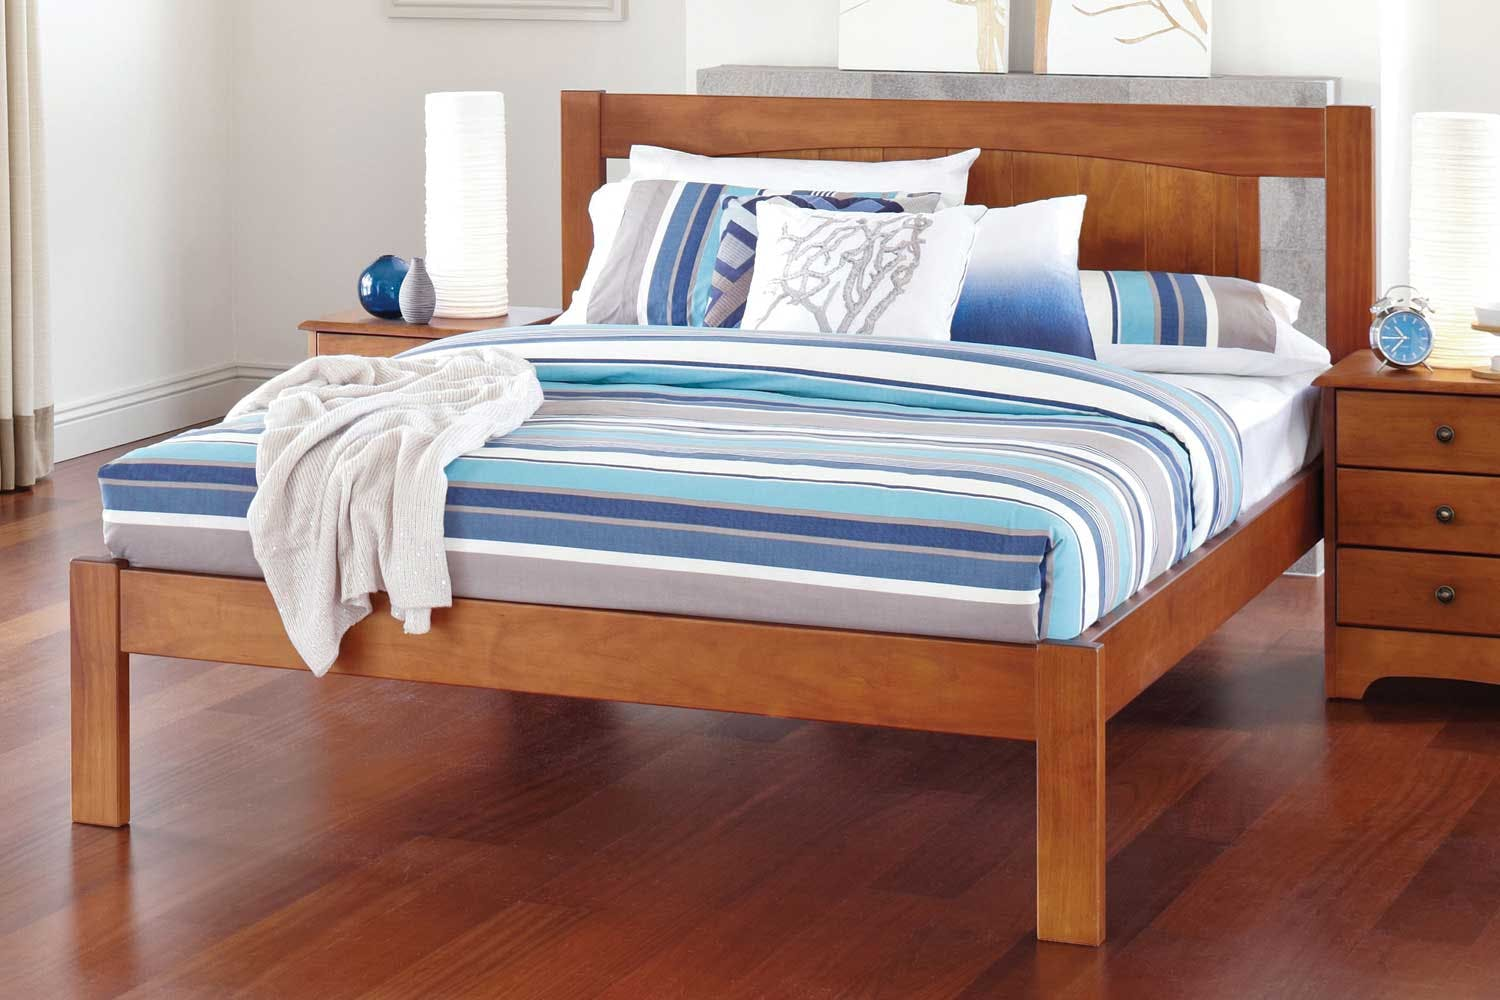 Image of Calais King Bed Frame by Coastwood Furniture